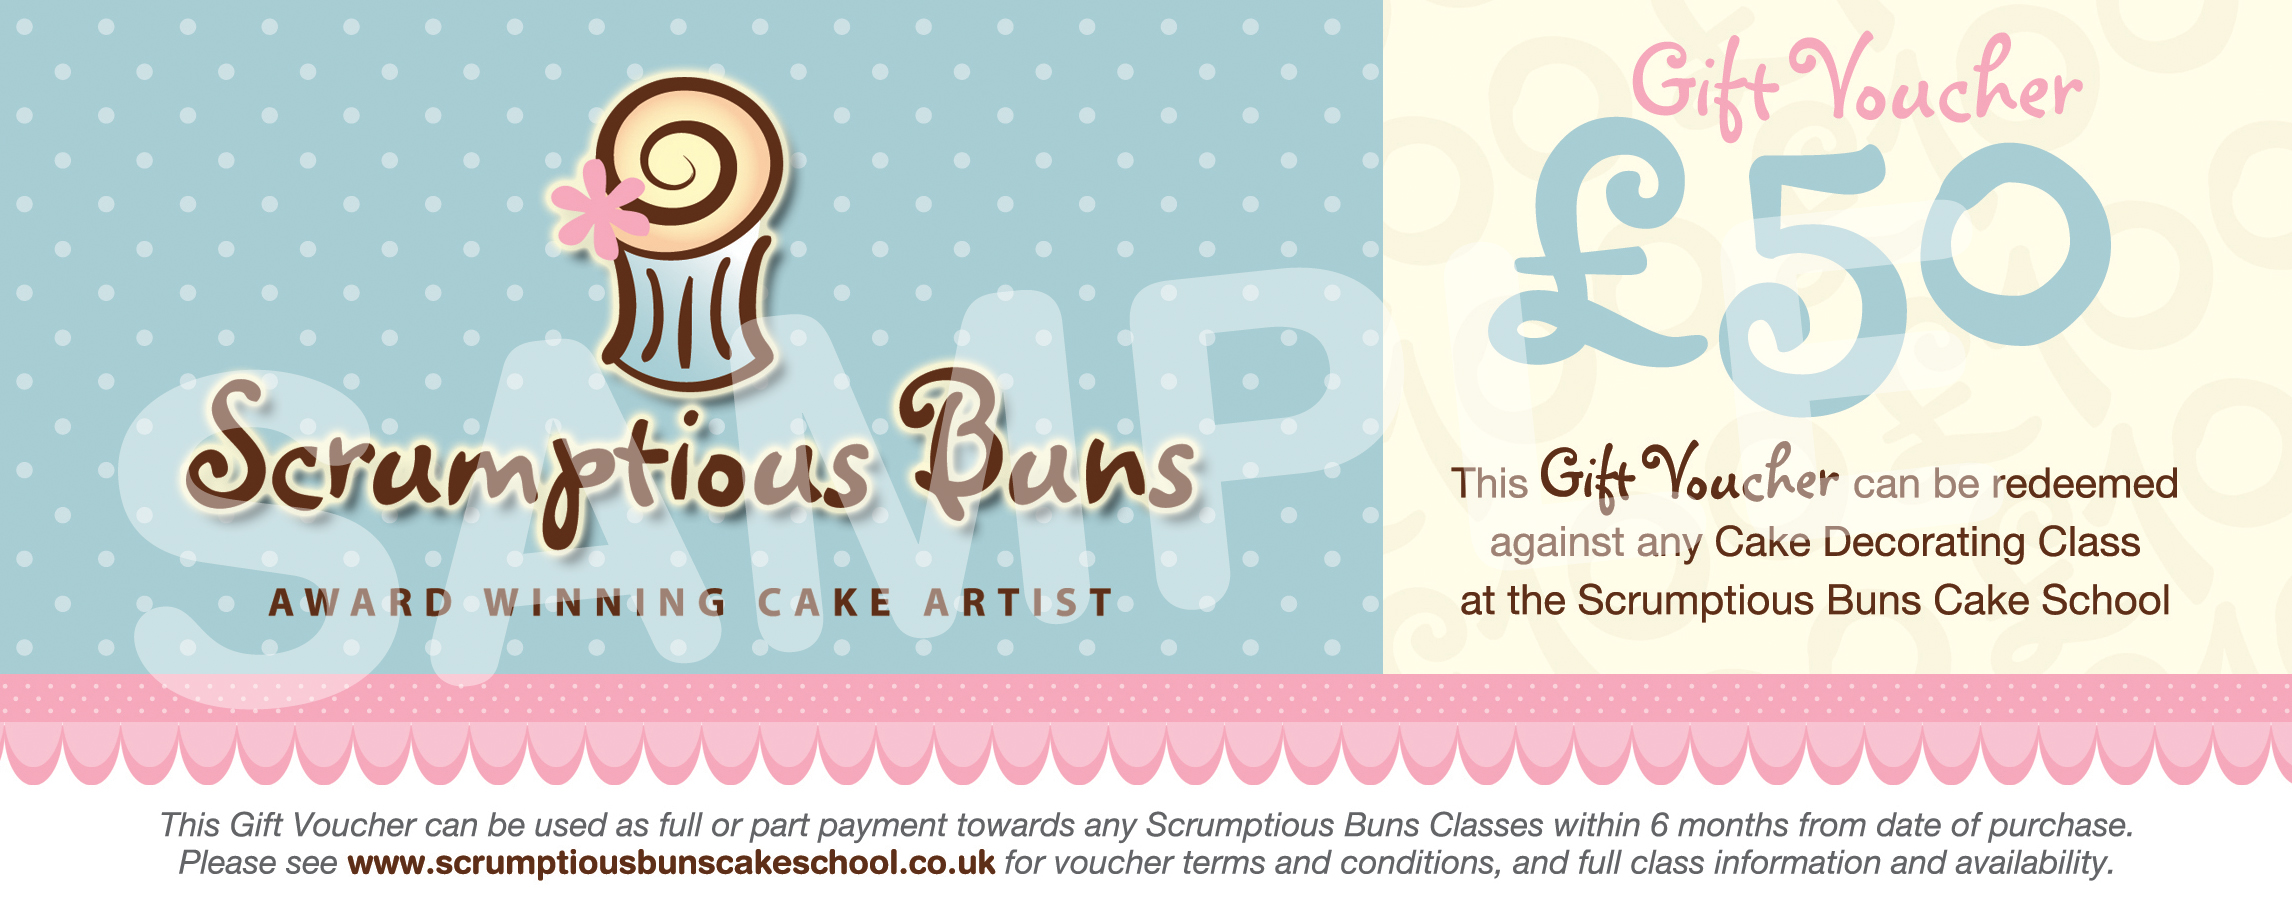 gift voucher cake decorating class